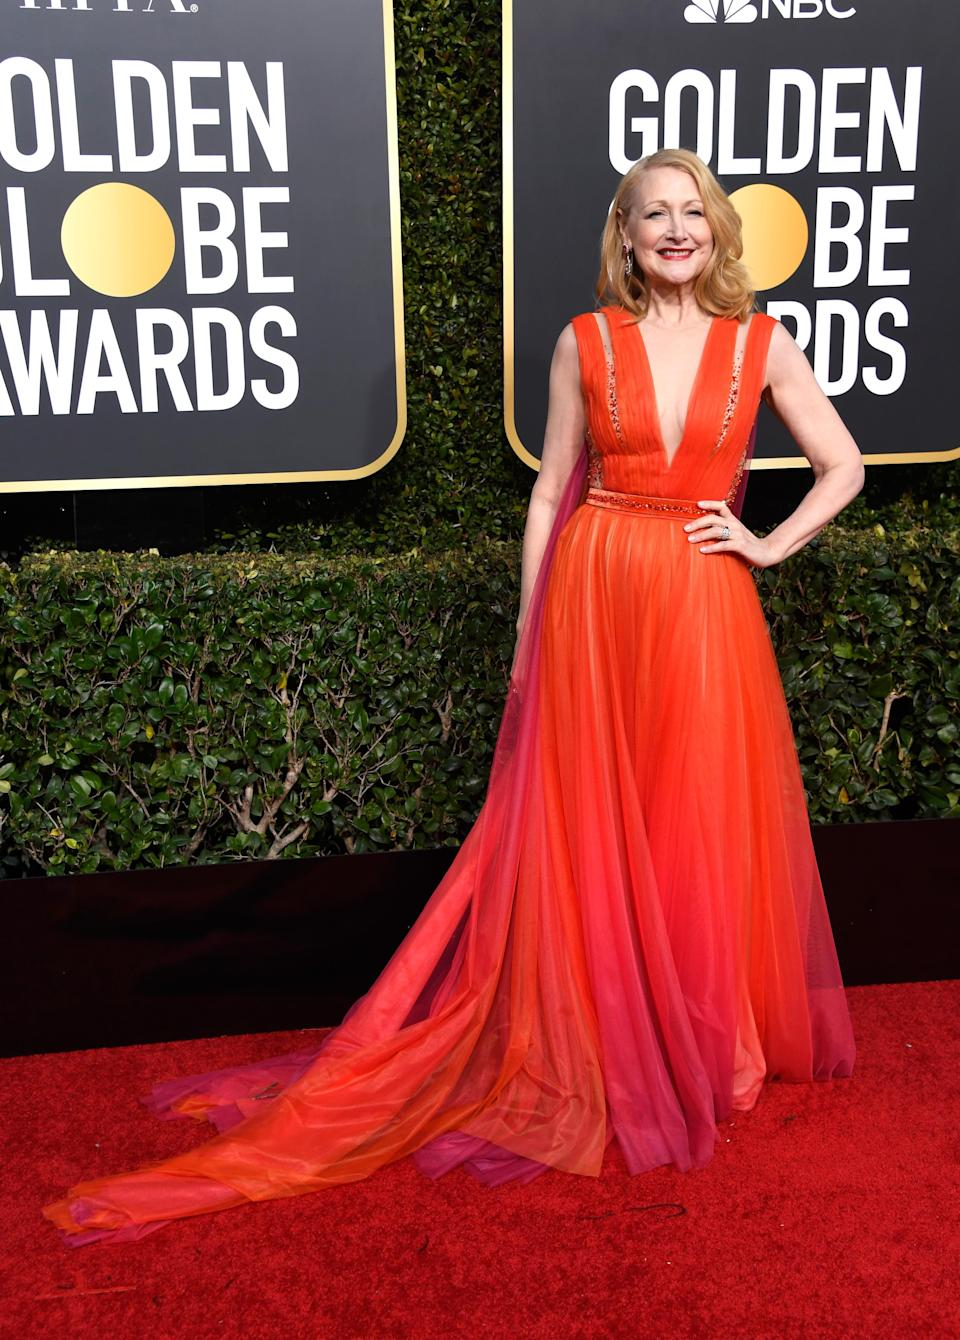 """<p>Clarkson (dressed in Georges Chakra) took home an award for her role in the HBO miniseries """"Sharp Objects.""""<br>Image via Getty Images. </p>"""